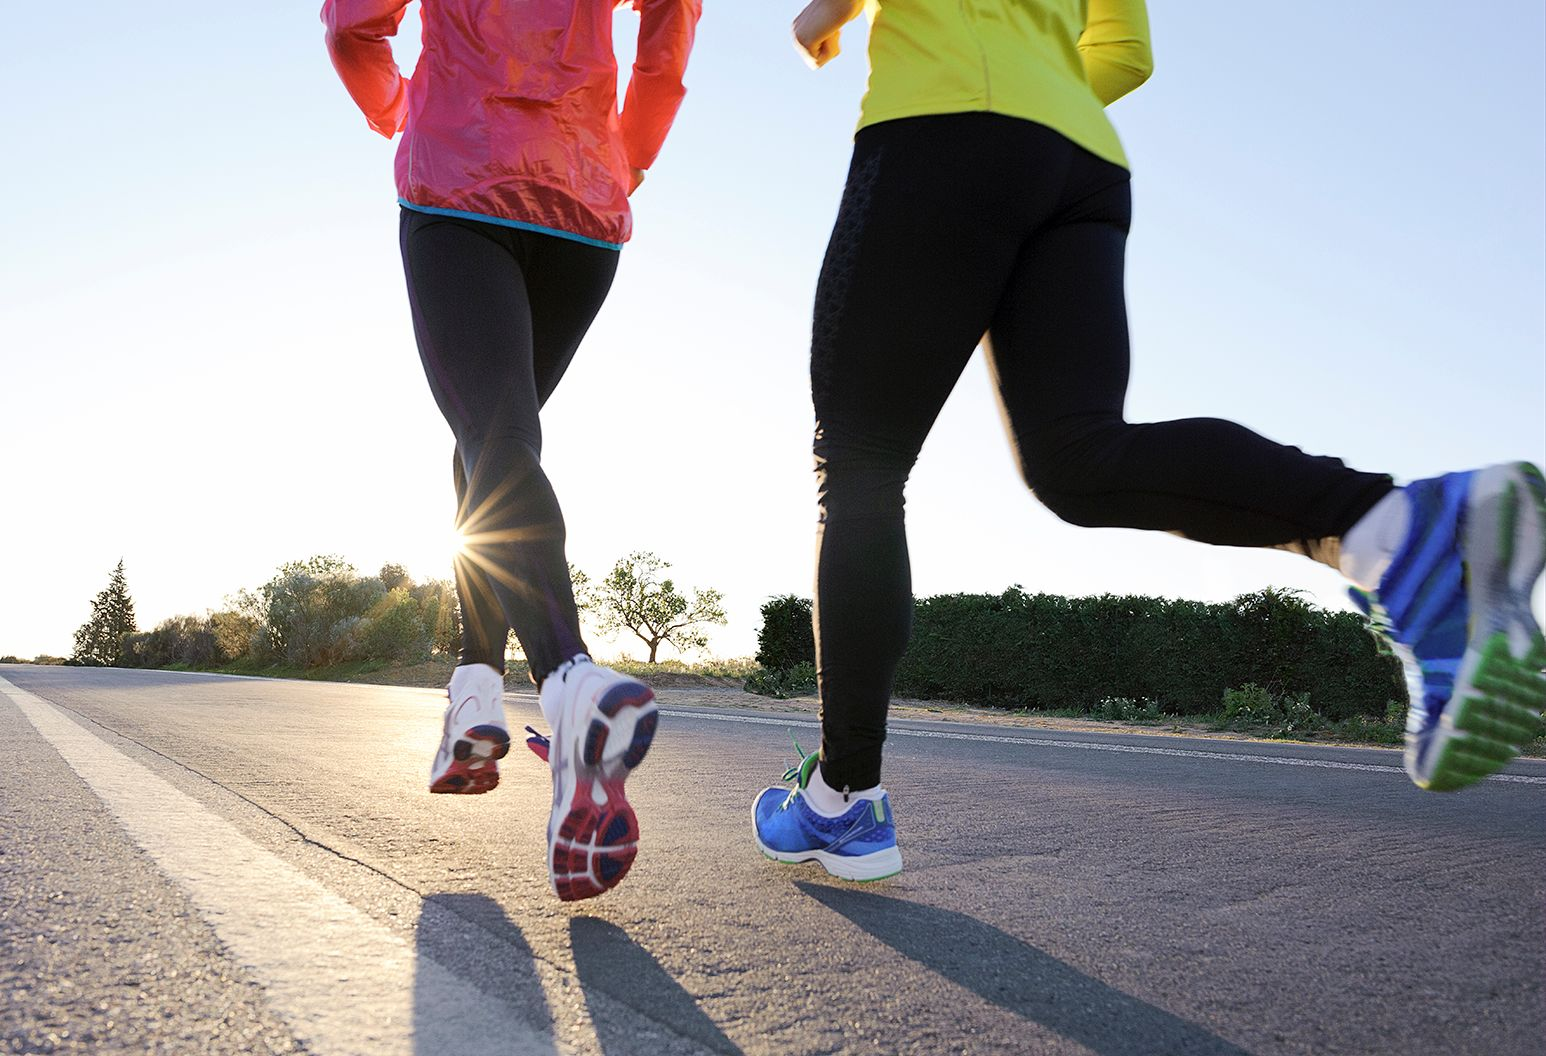 Two athletes running down a long two lane highway as the sun starts to set in the background